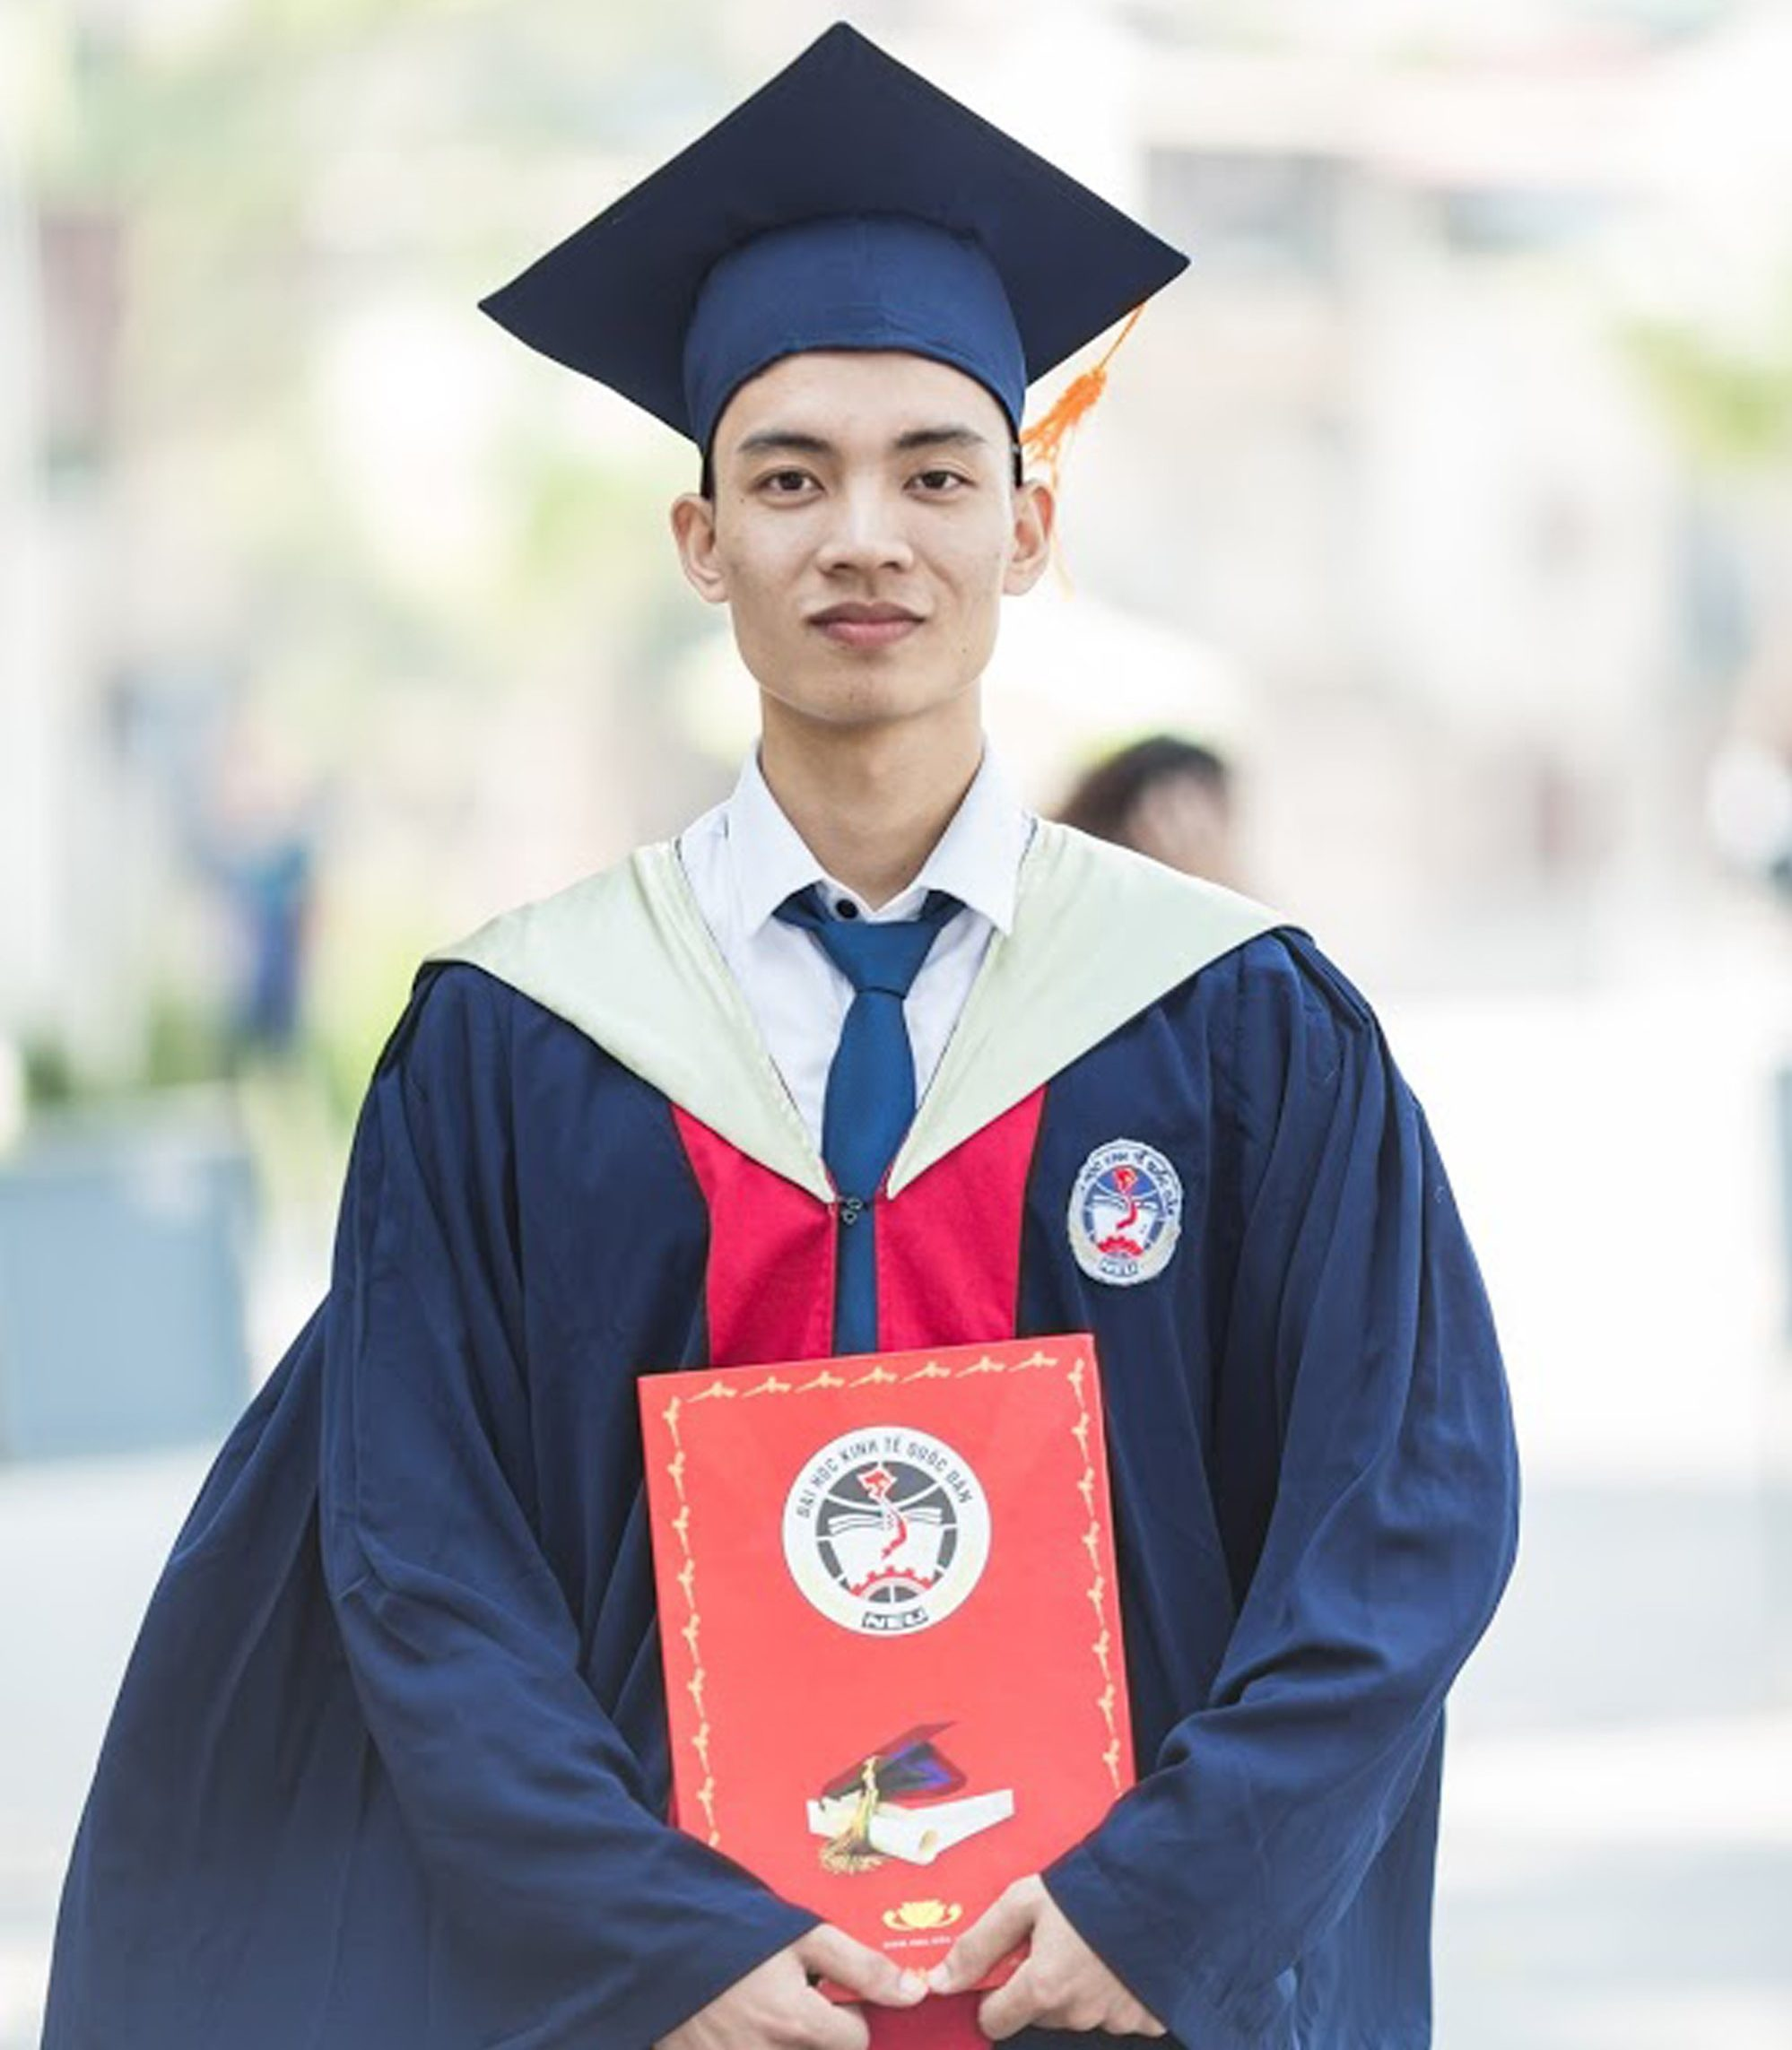 academic-degree-cap-ceremony-1007066